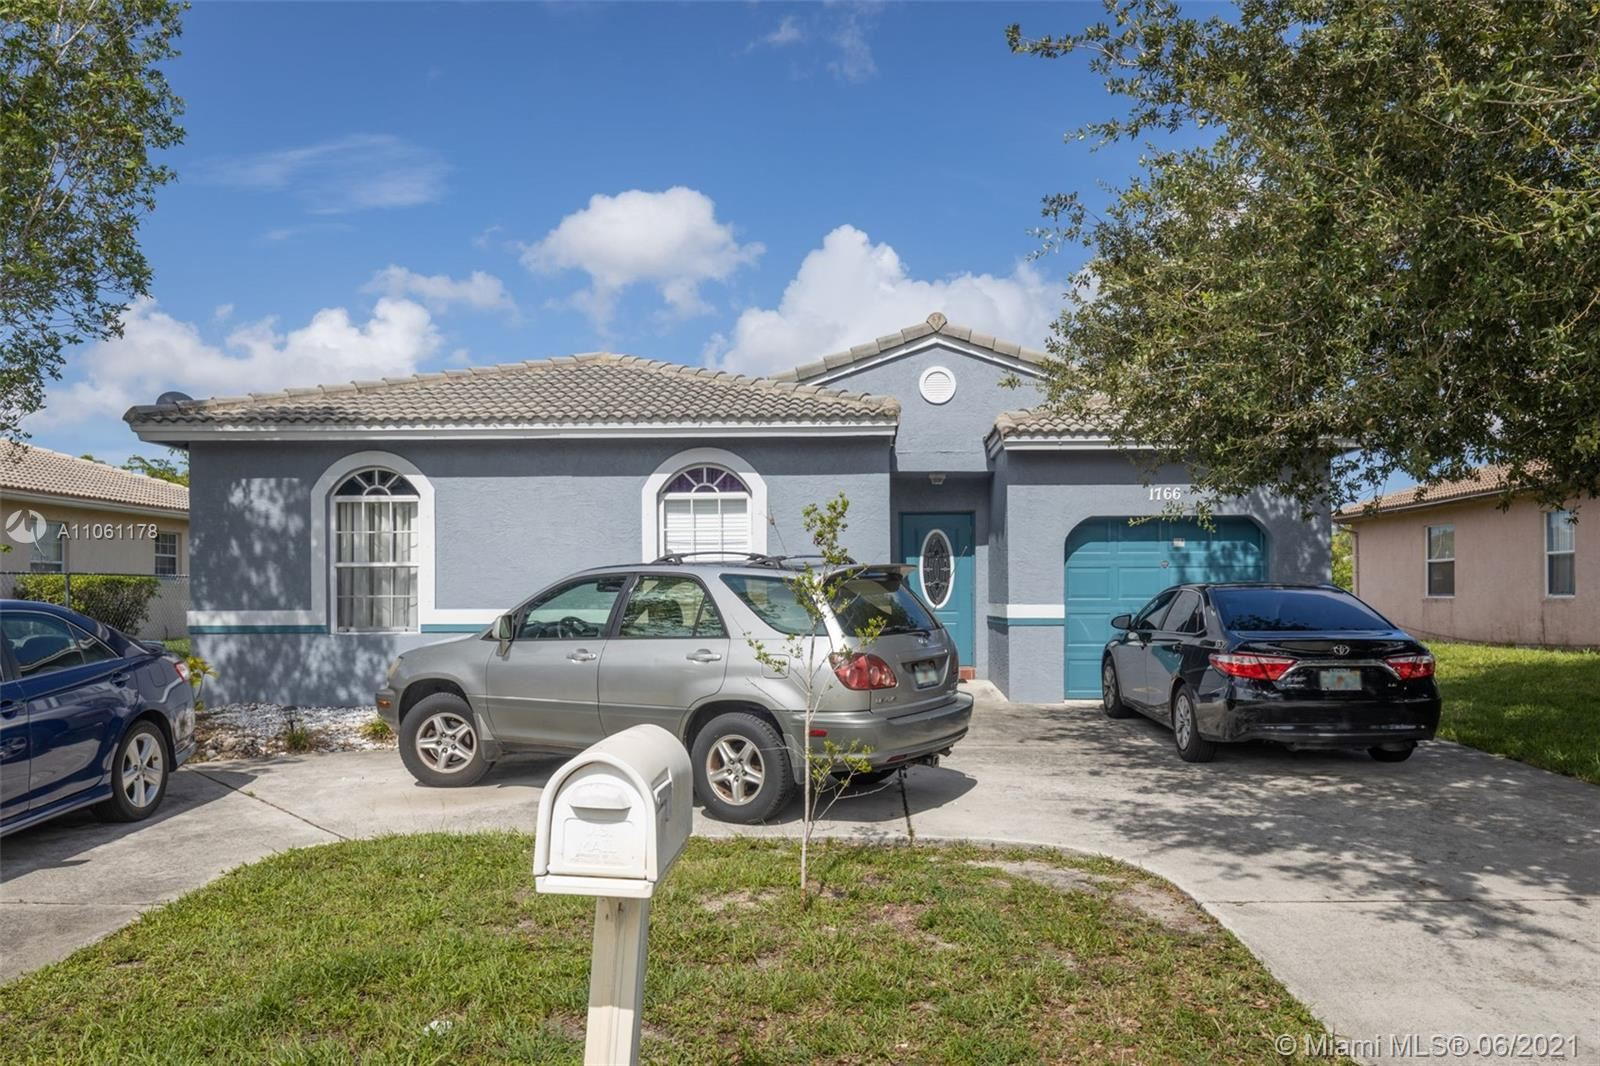 Photo of 1766 NW 56th Ave, Lauderhill, FL 33313 (MLS # A11061178)